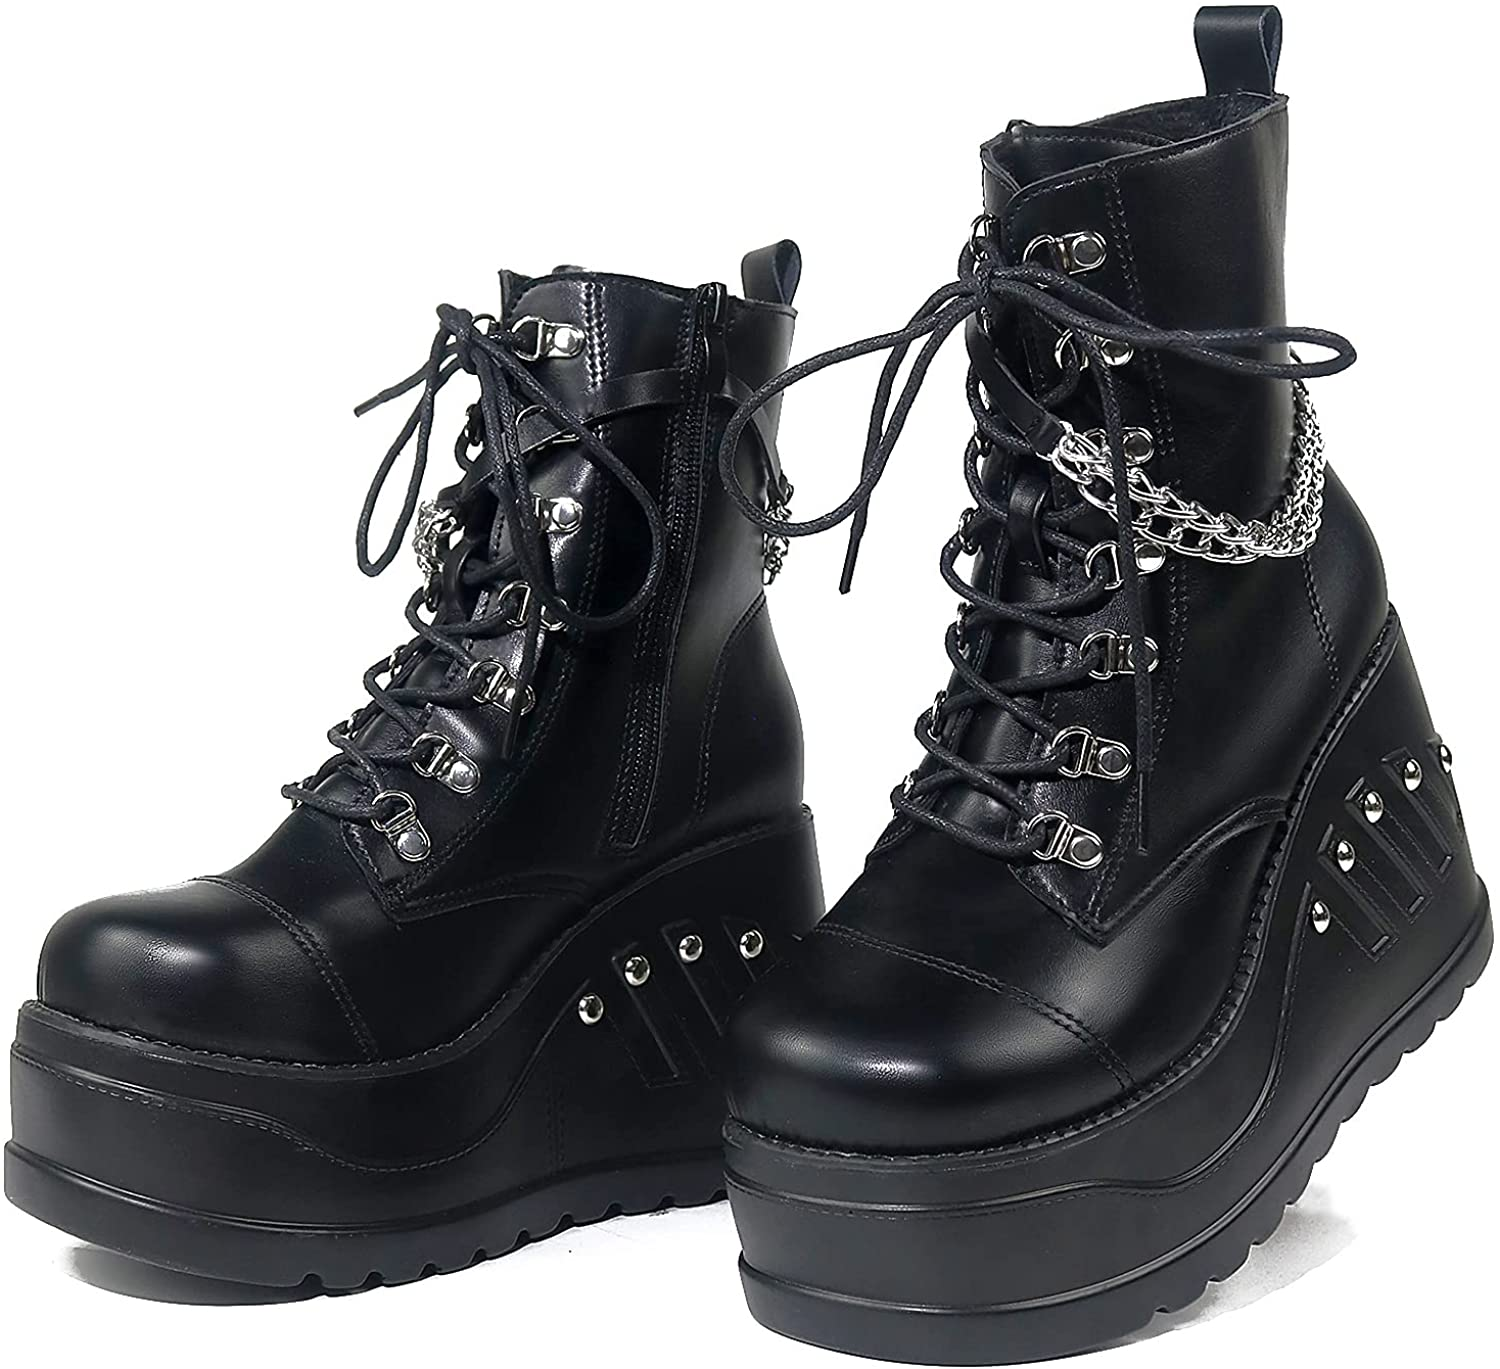 femflame Women's Platform Boots Goth Punk Block Heel Mid Calf Boots with Chain Studded Combat Boots Motorcyle Boots